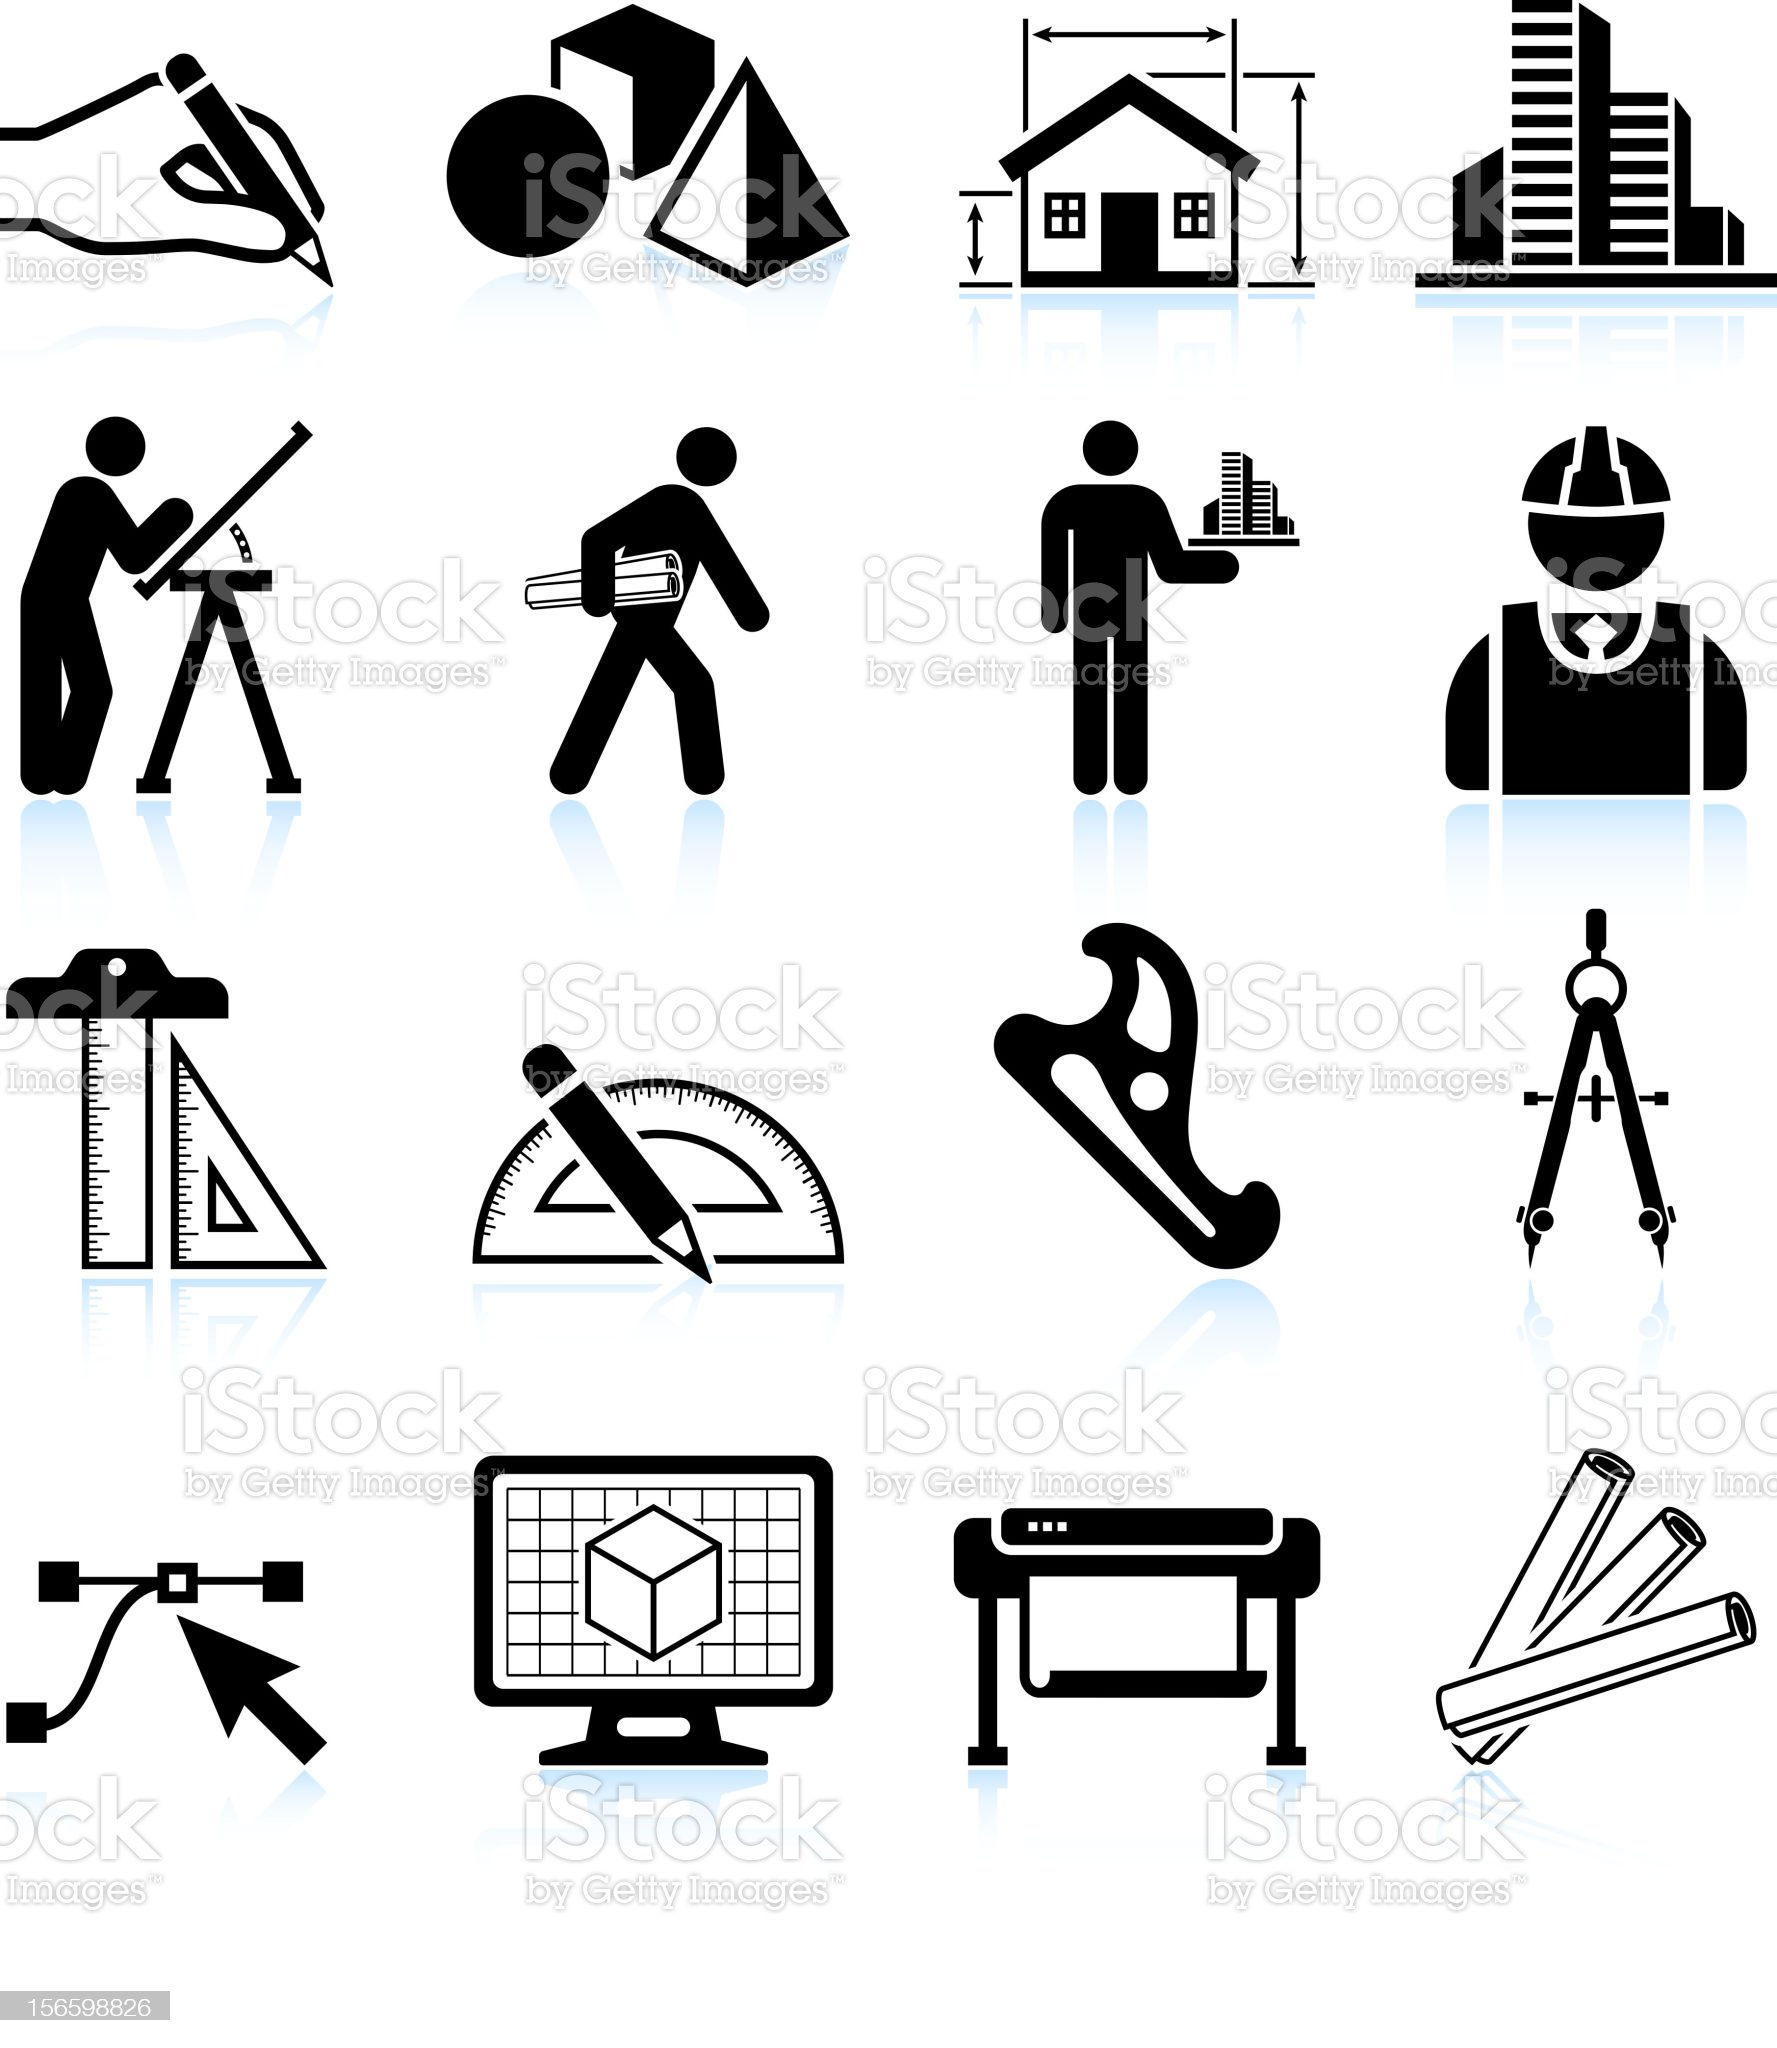 Set of black and white architecture icons royalty-free stock vector art